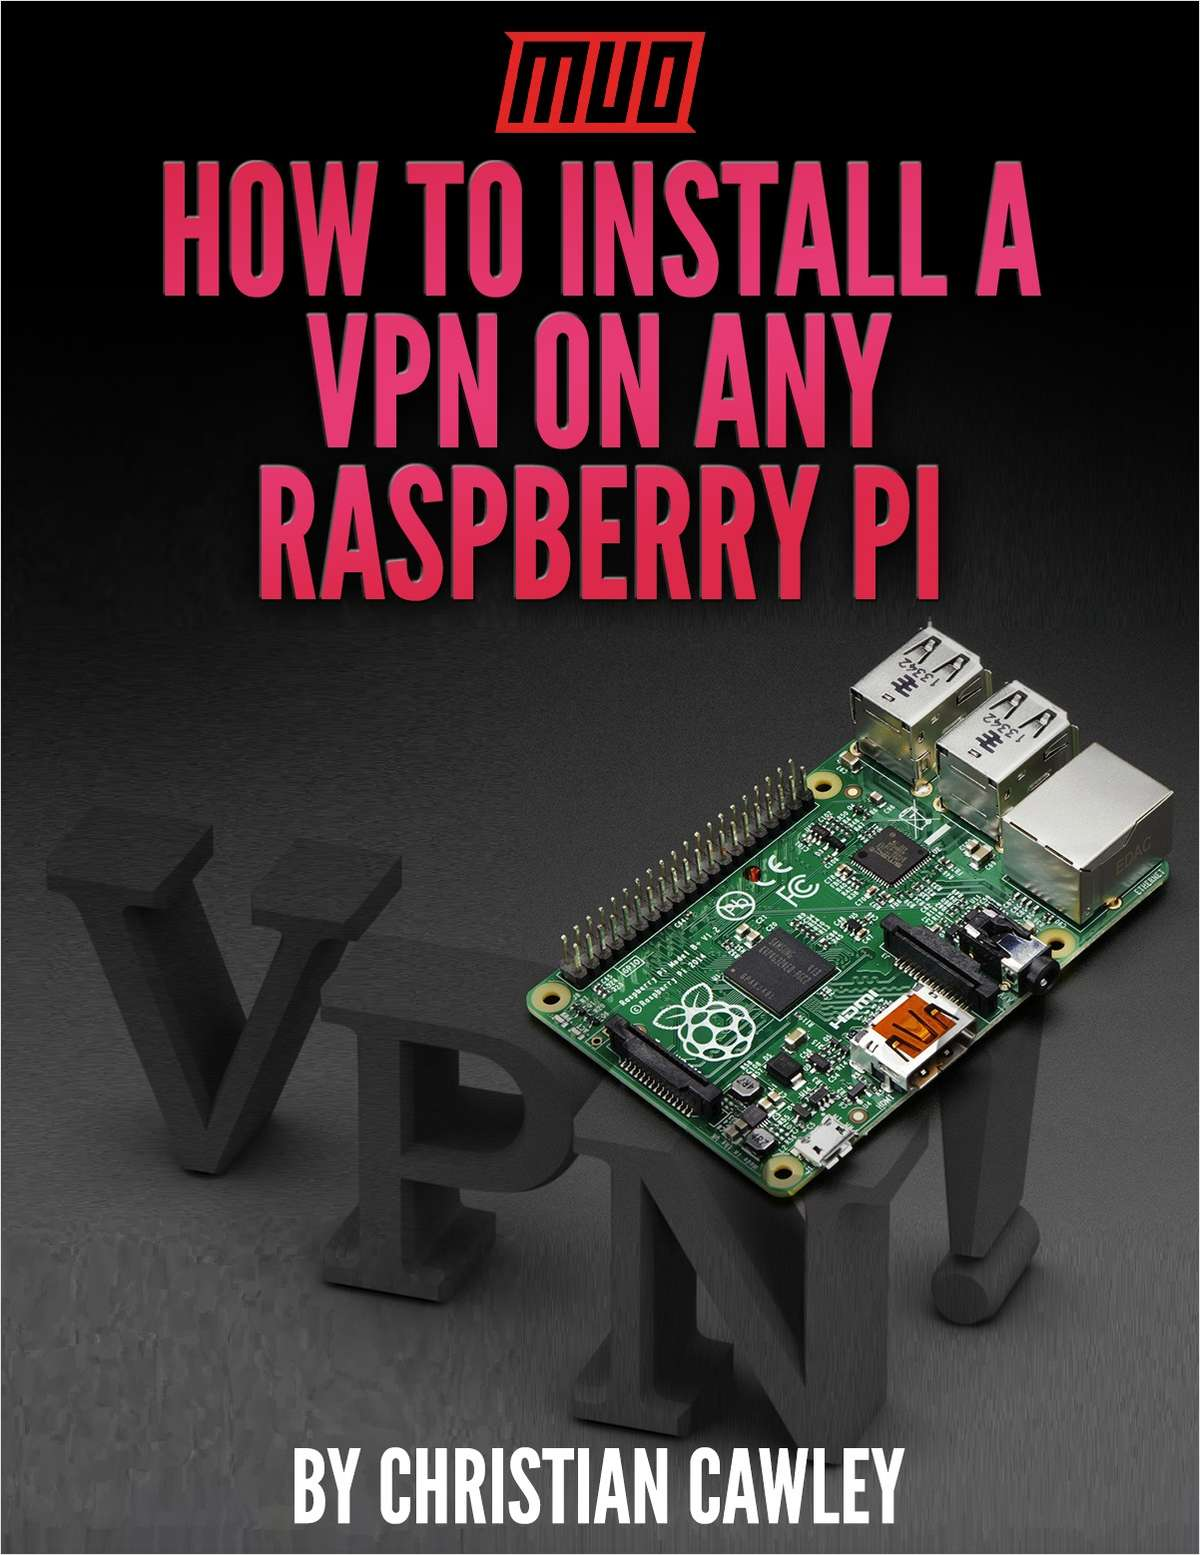 How to Install a VPN on Any Raspberry Pi